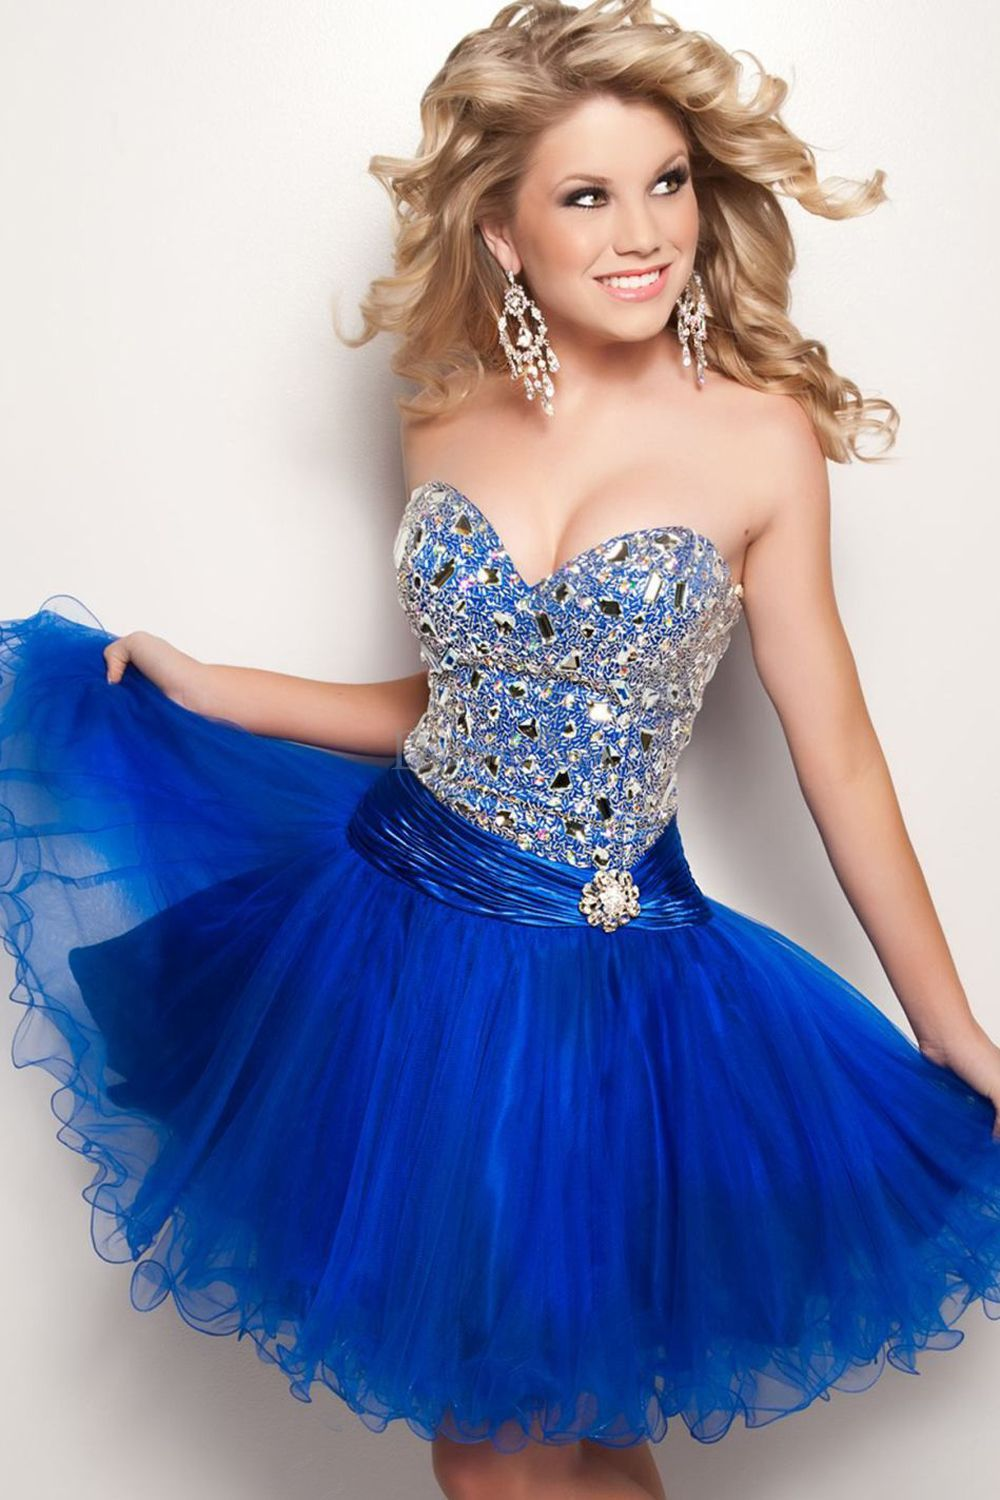 Royal Blue Sweet 16 Dress With Peaked Sweetheart Neckline And Crystals Sweet 16 Dresses Jasz Couture Prom Dresses Tulle Homecoming Dress [ 1500 x 1000 Pixel ]